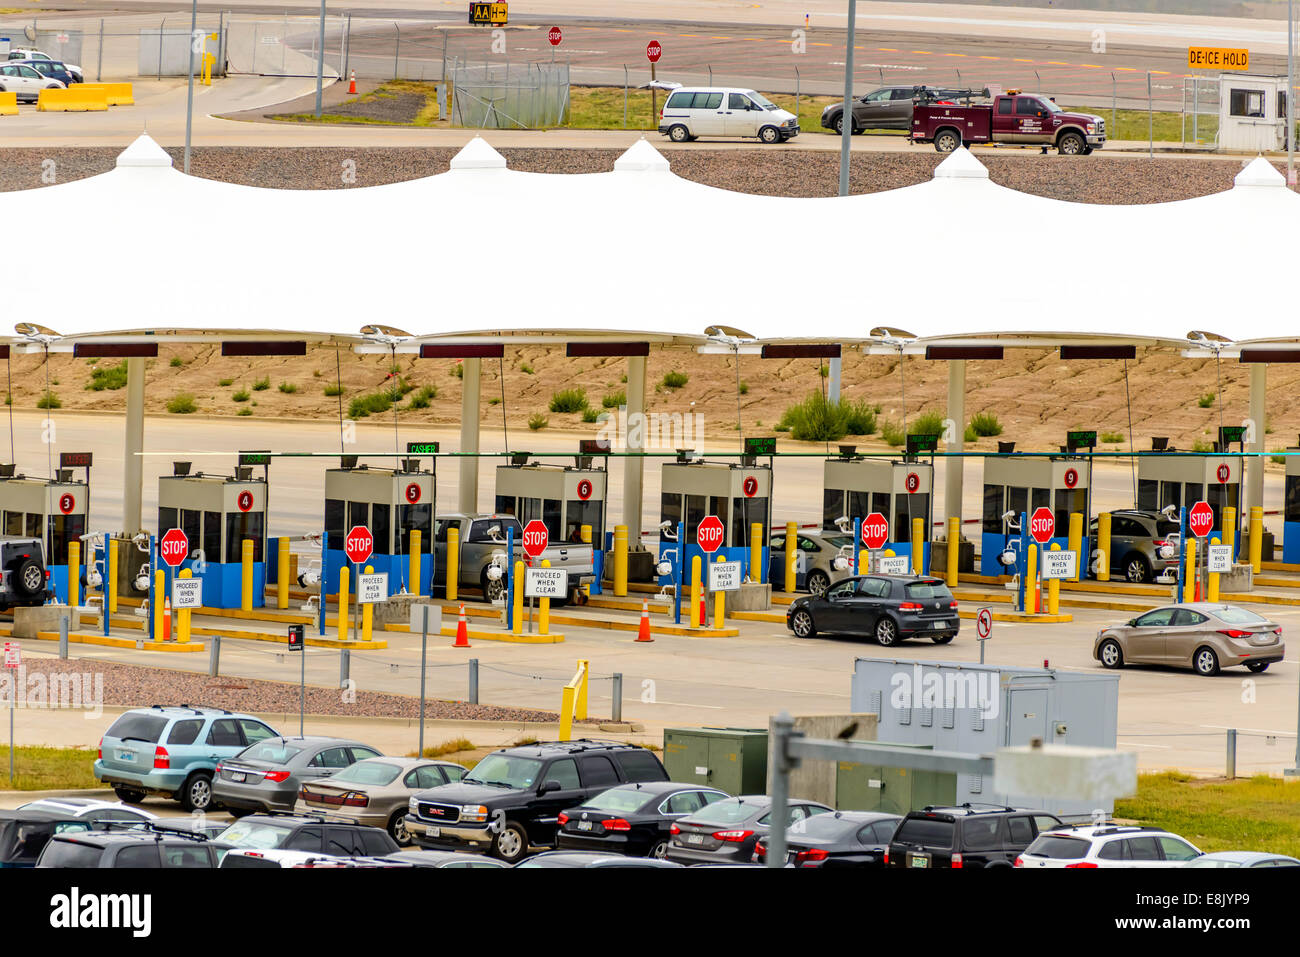 airport parking lot stock photos airport parking lot stock images alamy. Black Bedroom Furniture Sets. Home Design Ideas